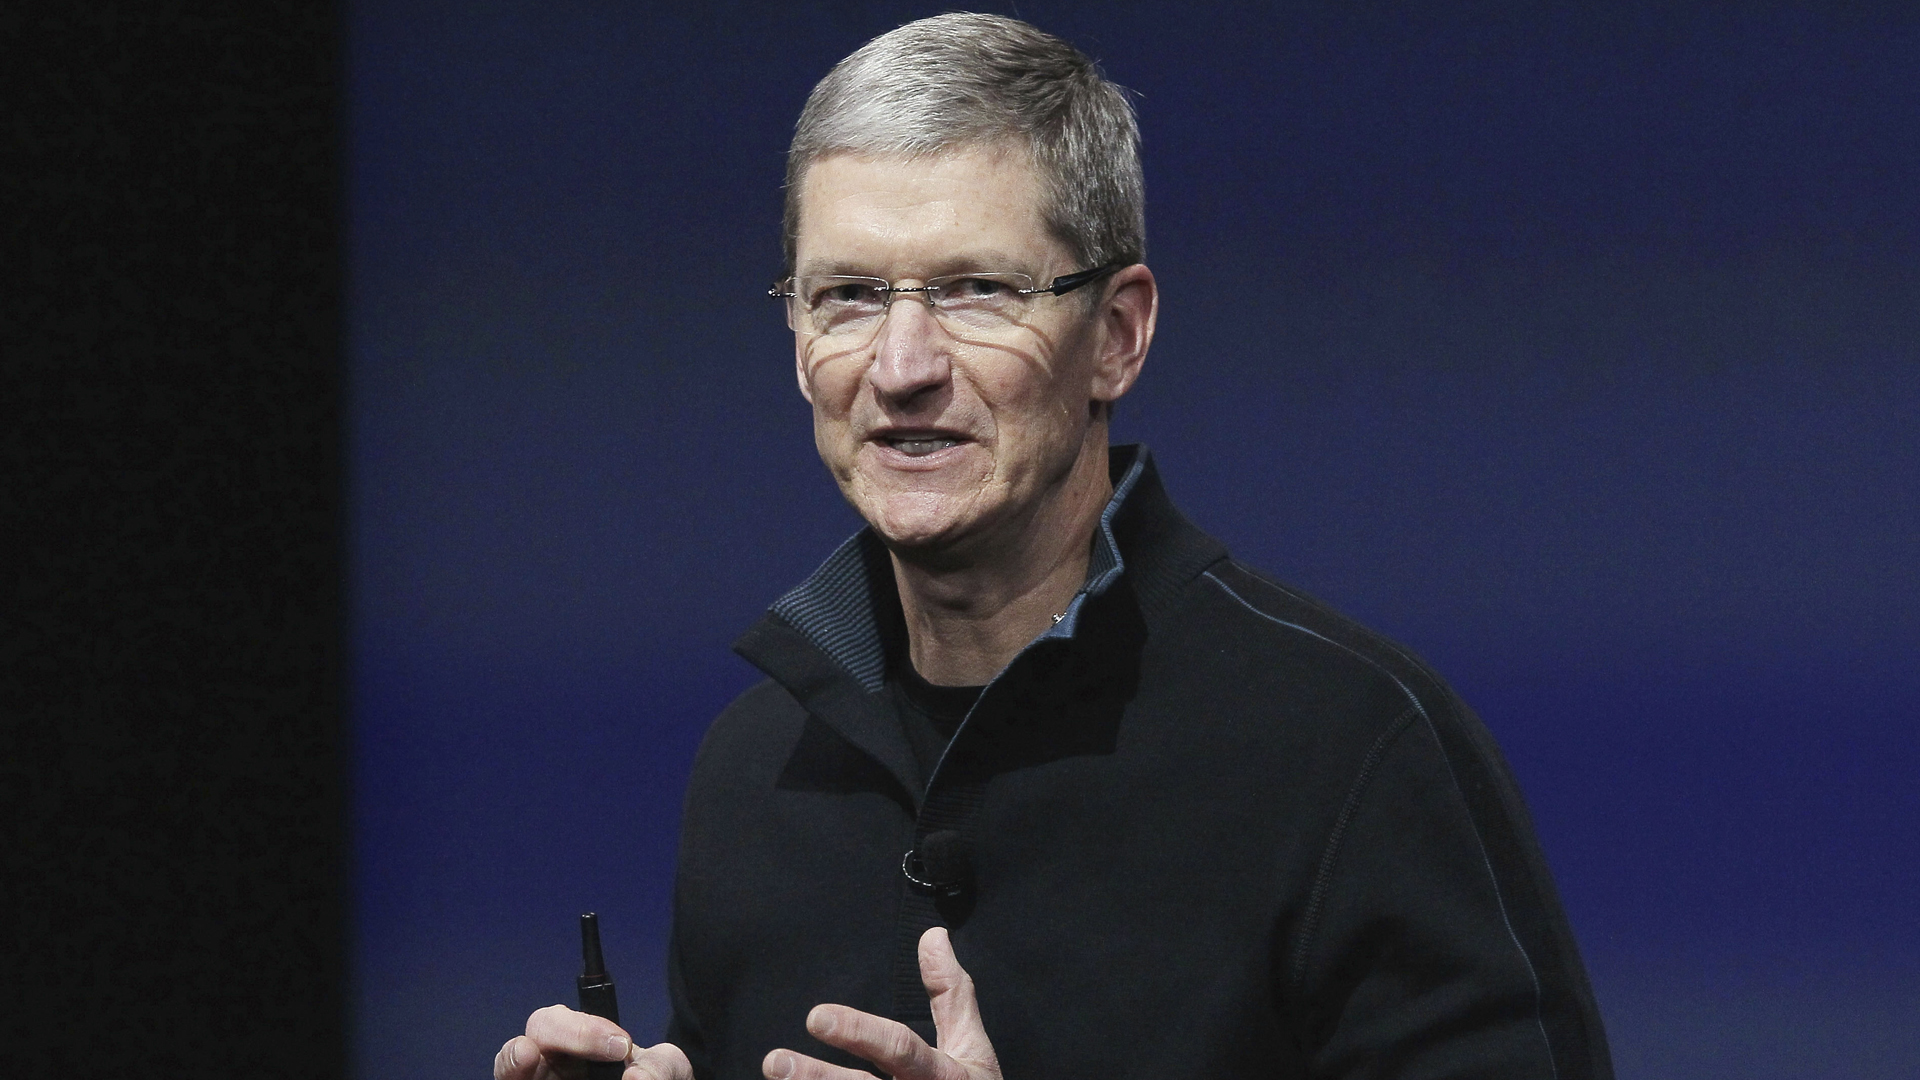 Apple boss Tim Cook sees great potential in augmented reality. Image Credit: Apple.